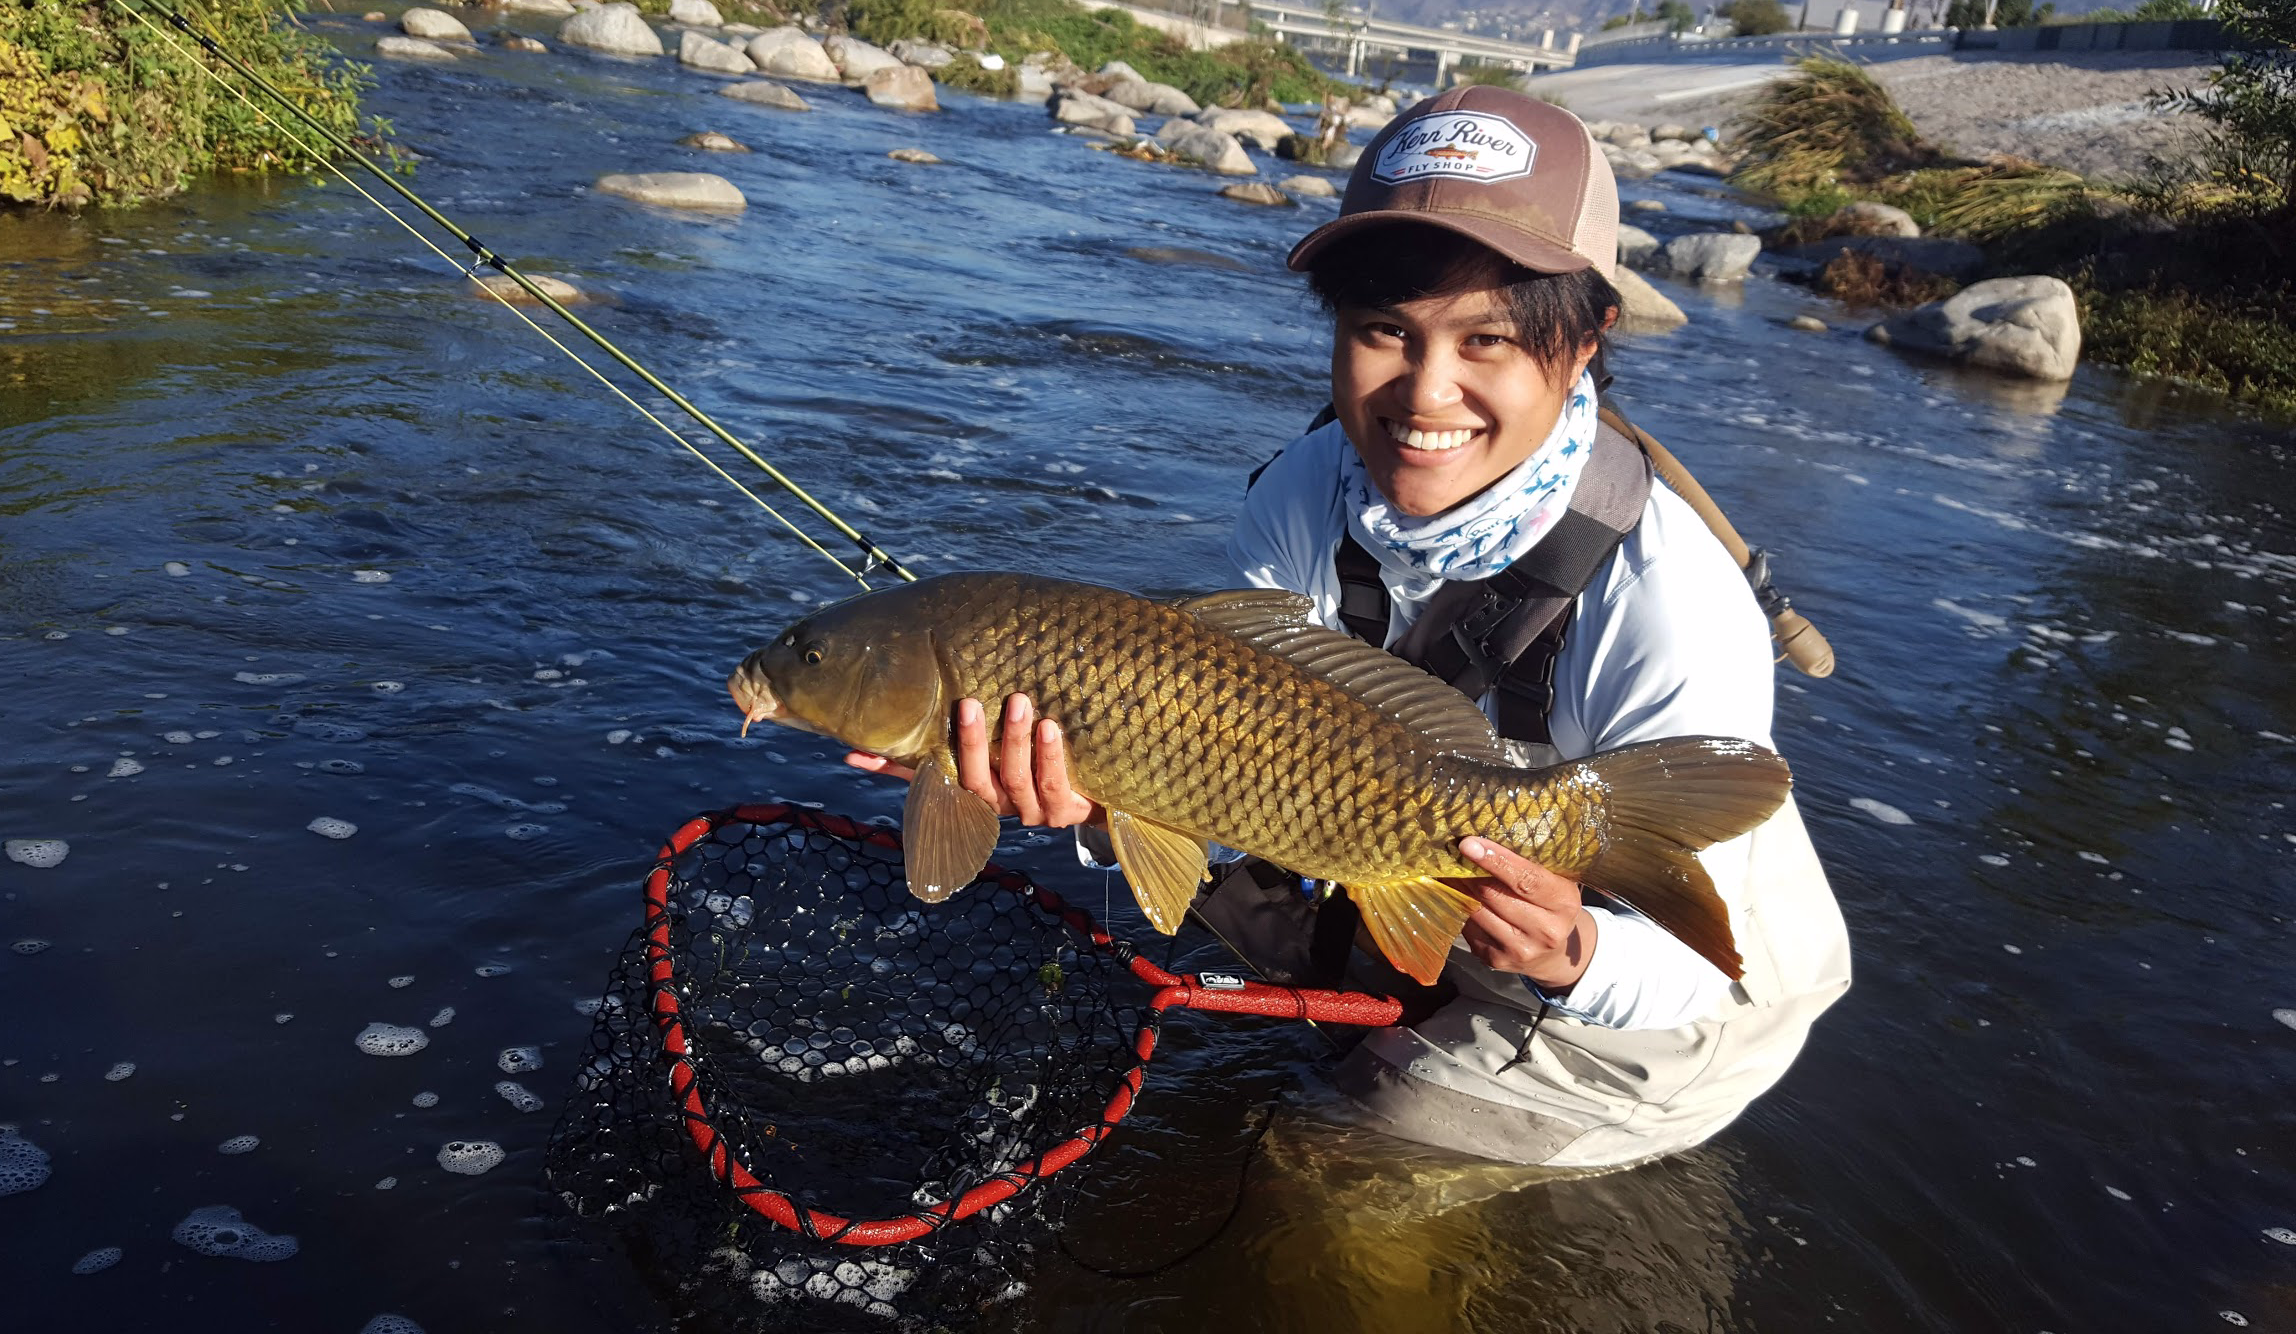 """Celine Bayla - In her honor, the new name of the Fly Gal Weekend will now be called """"Celine's Fly Gal Weekend."""" She has dedicated her time connecting and building a community of women who fly fish. She is missed, but her legacy will live, forever. Watch her tribute video"""